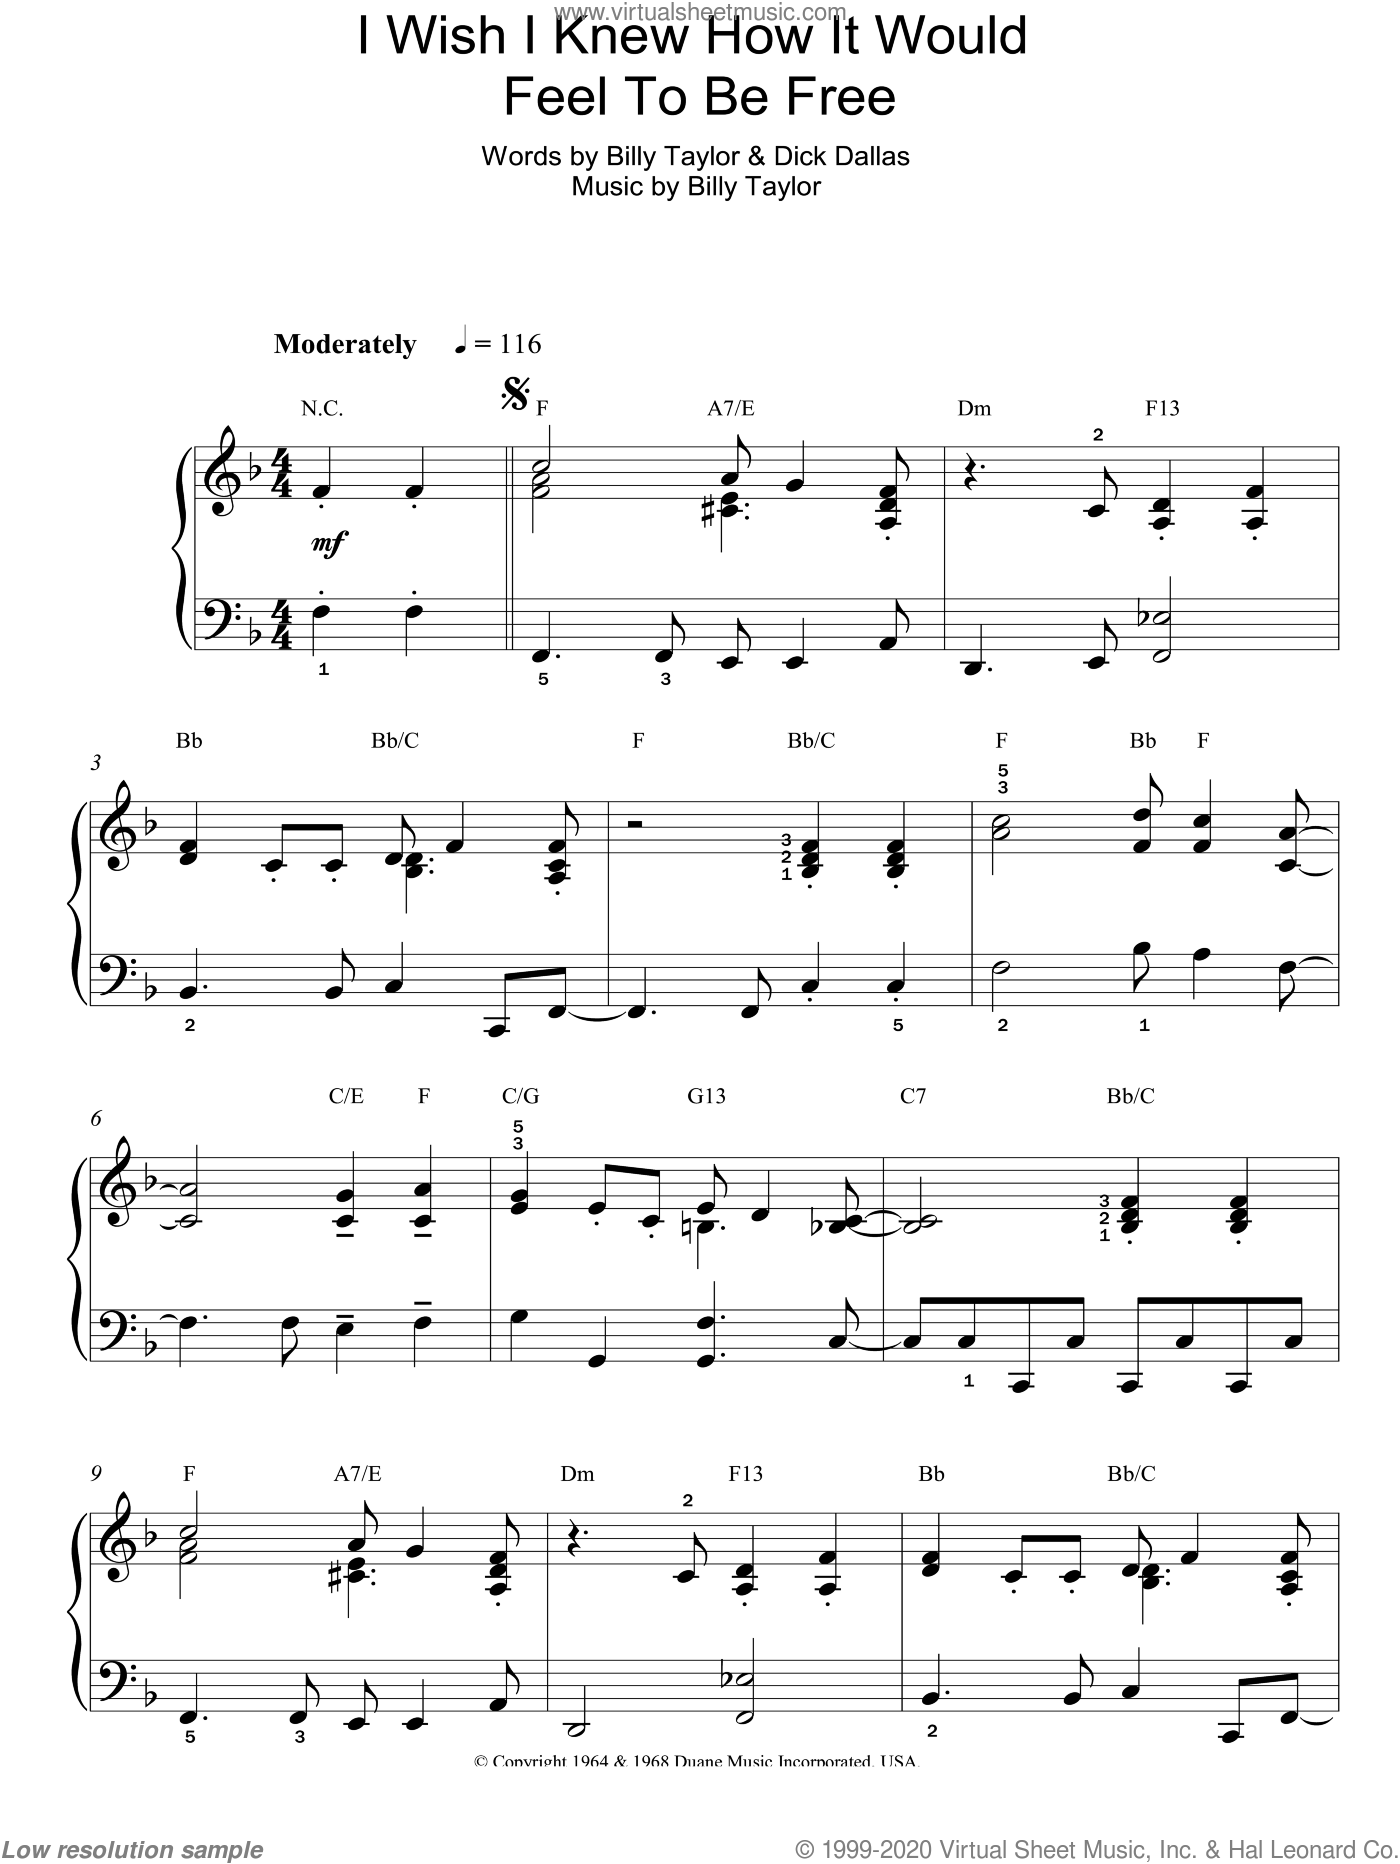 I Wish I Knew How It Would Feel To Be Free sheet music for piano solo by Billy Taylor